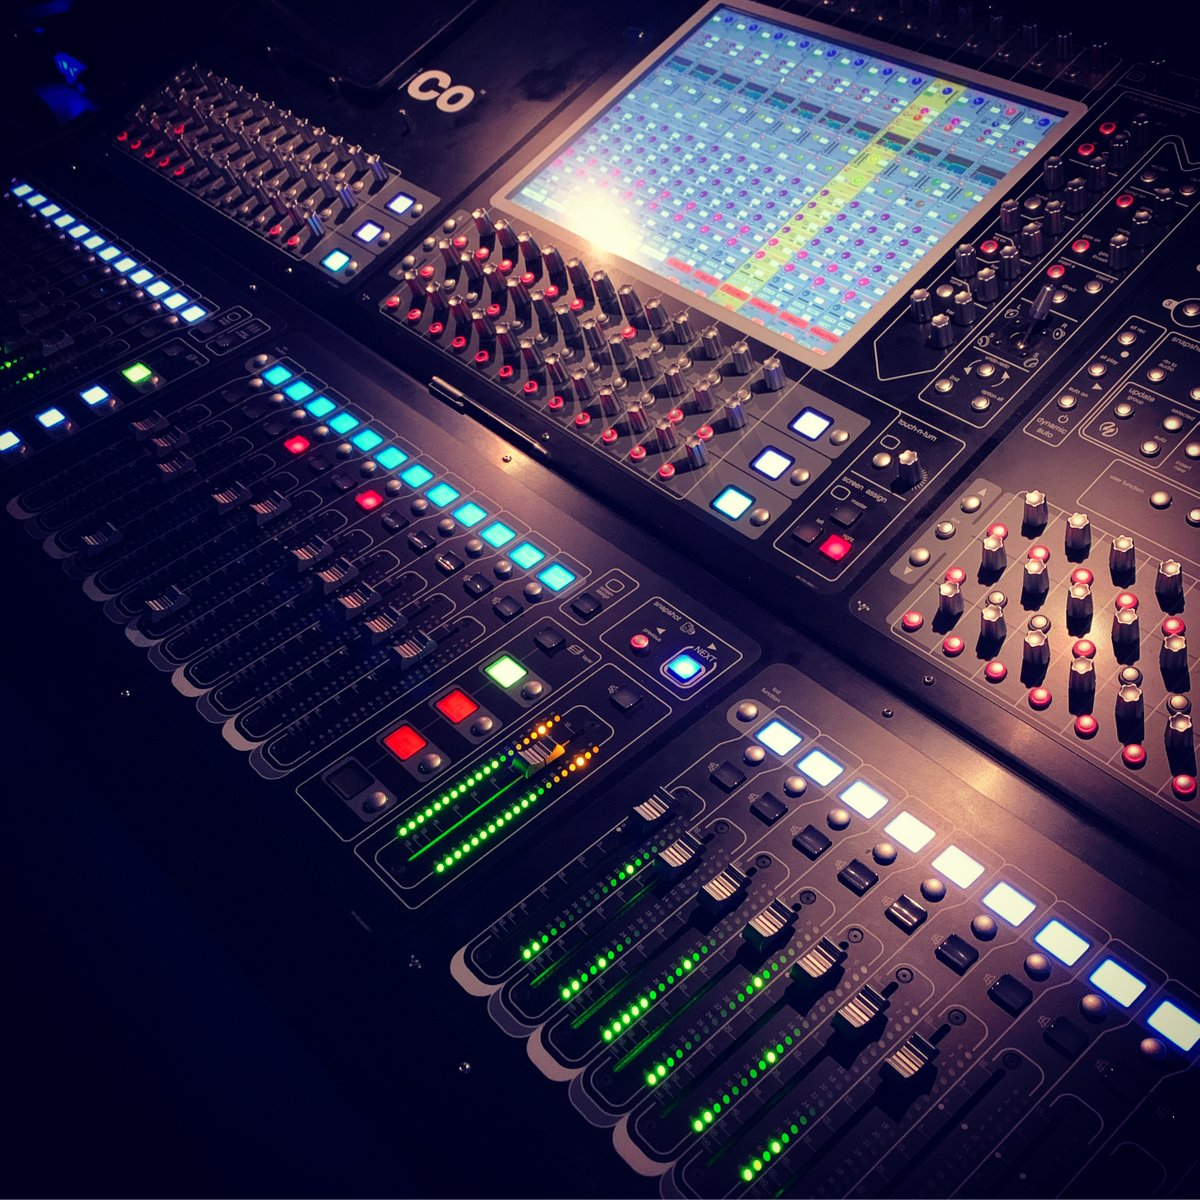 I get to do some pretty cool things and am forever thankful. Have I mentioned how much fun it is to mix on this thing? #foh #audio #audioengineer #digico #mixing<br>http://pic.twitter.com/oDpZXwI5BC